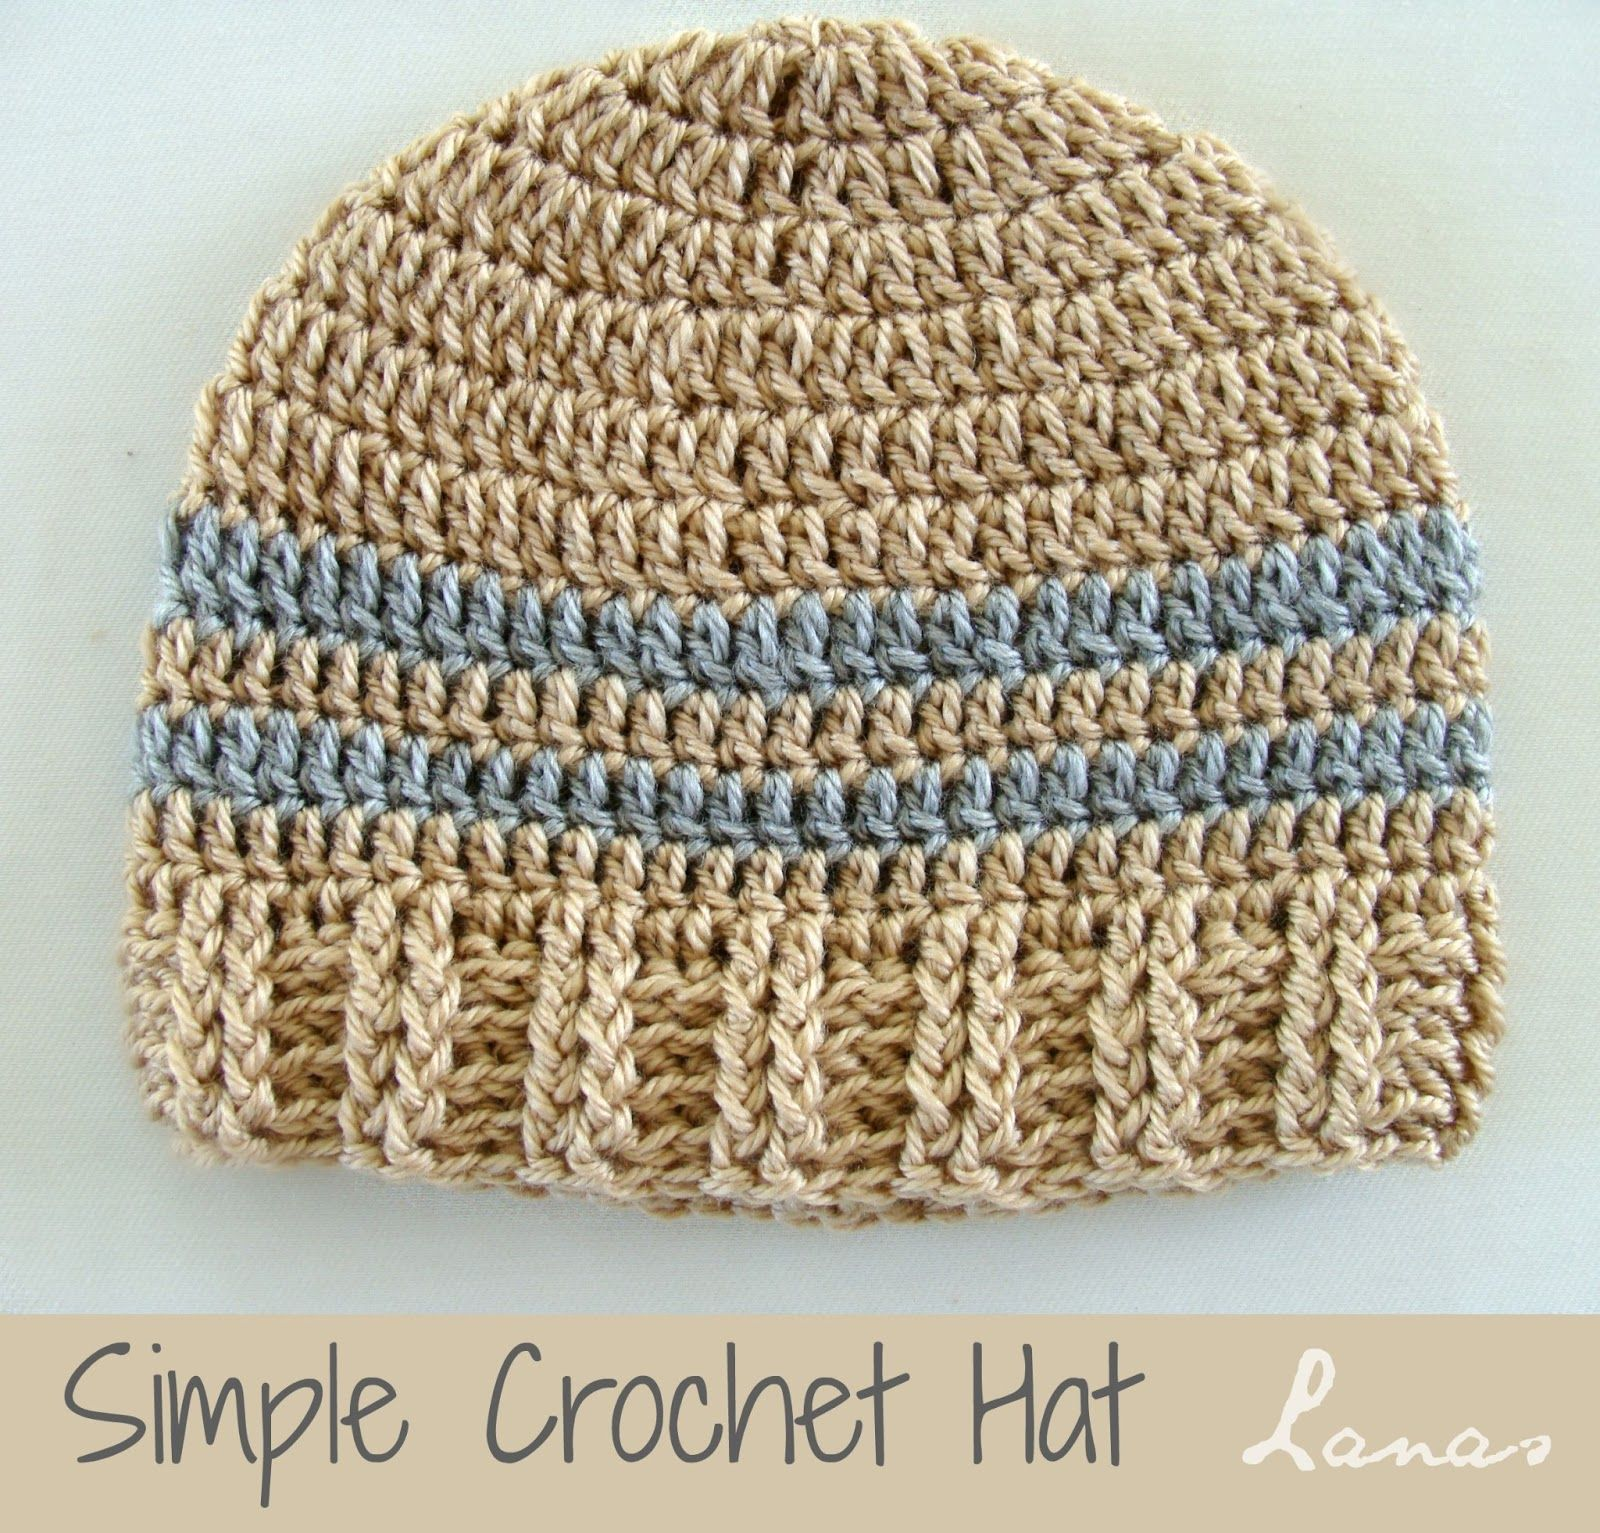 Lanas de Ana Ideas Simple Hats   Crochet, Crochet hats, Knitting